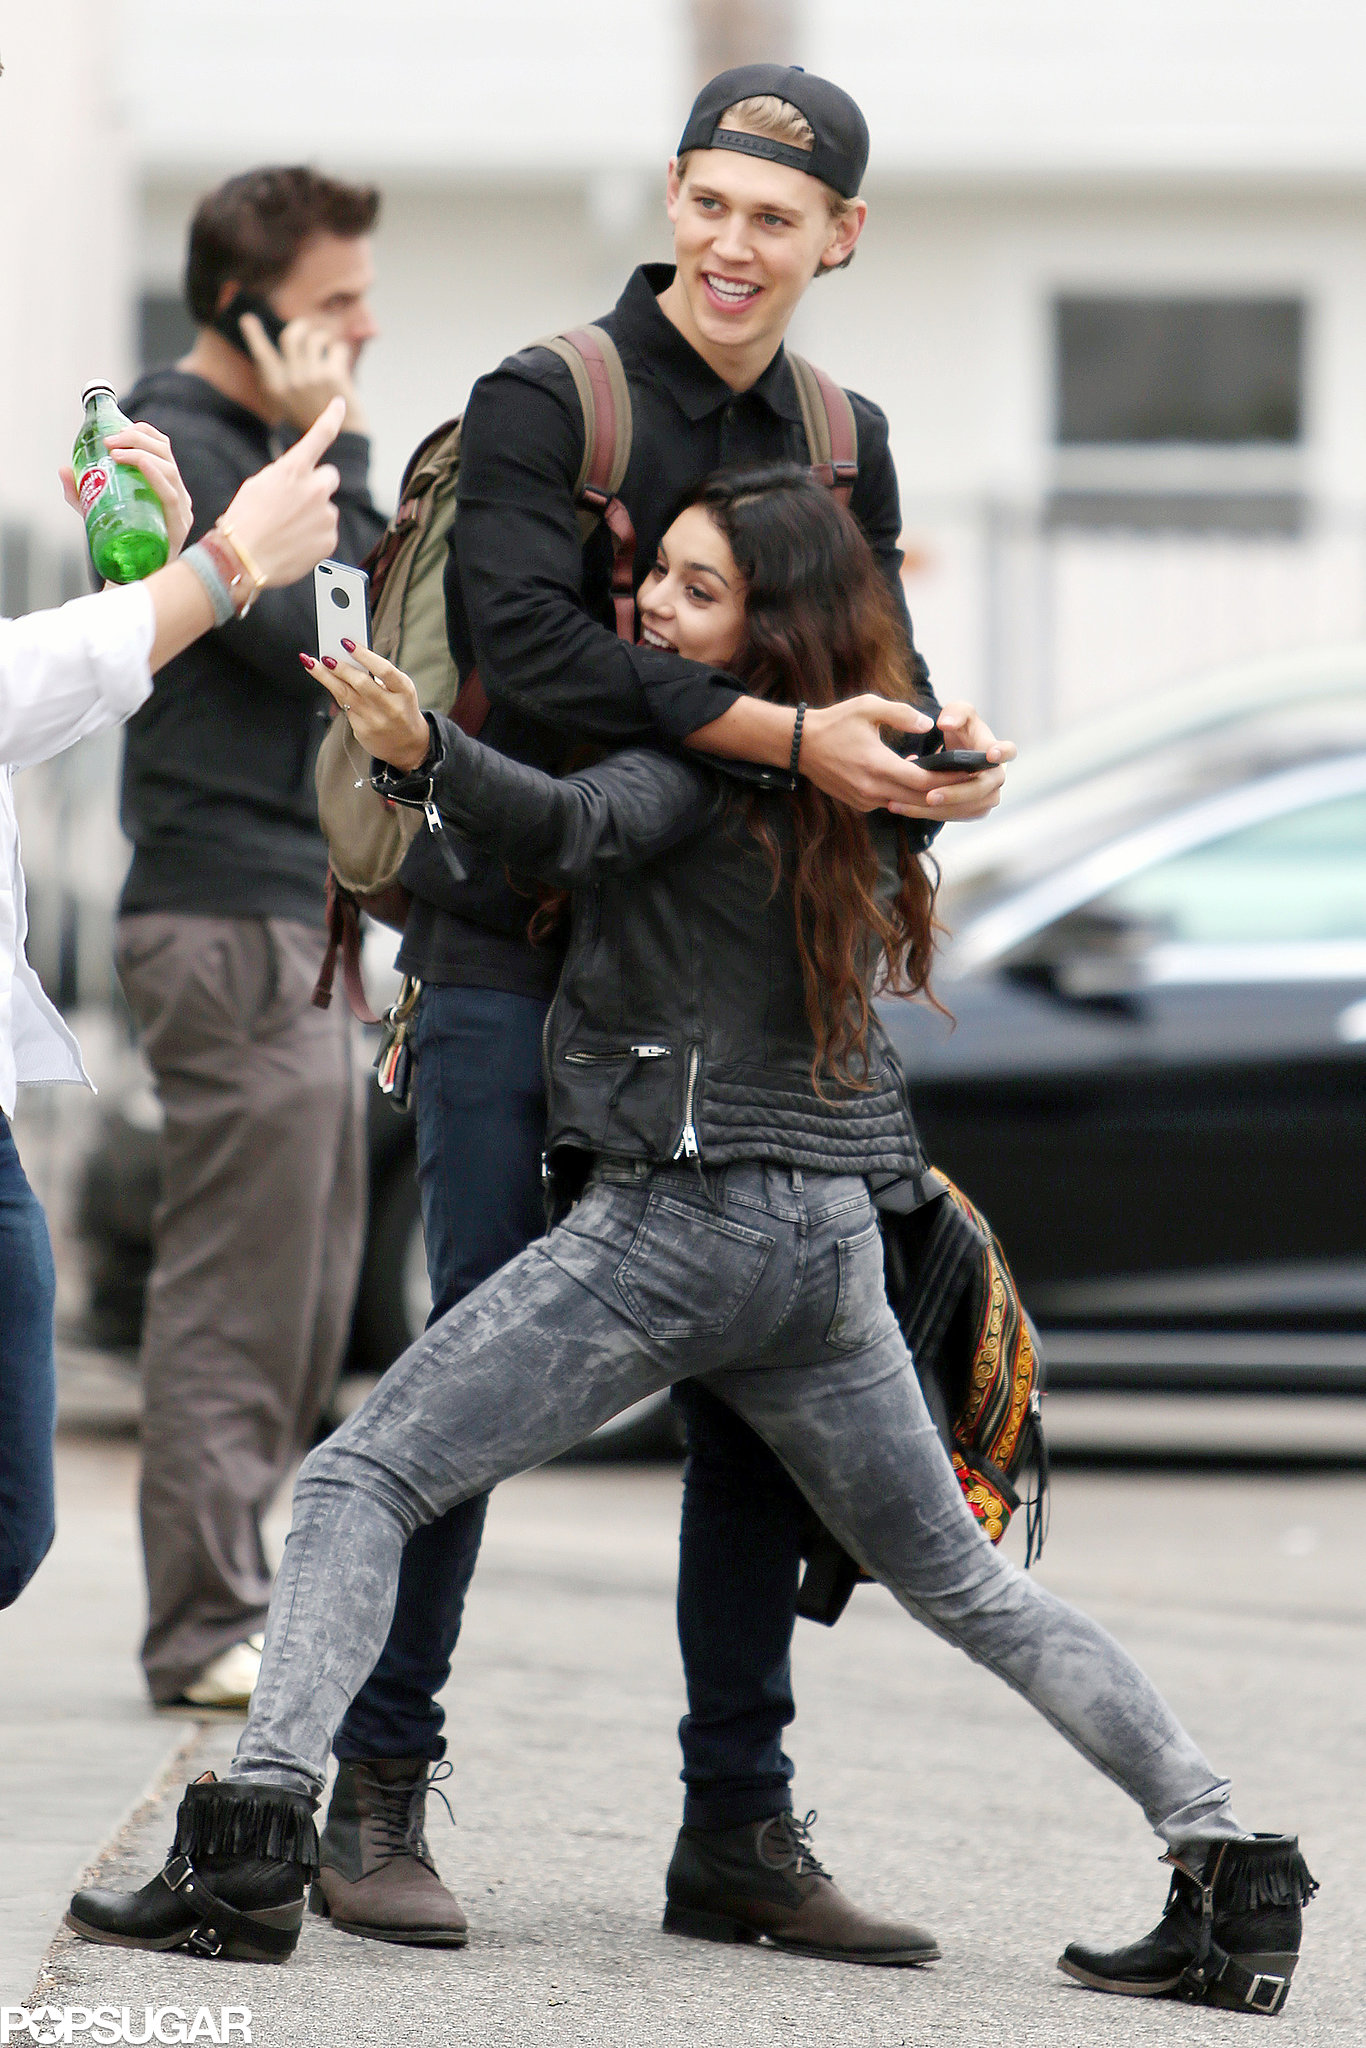 In December 2013, Vanessa Hudgens got silly while taking a selfie with boyfr